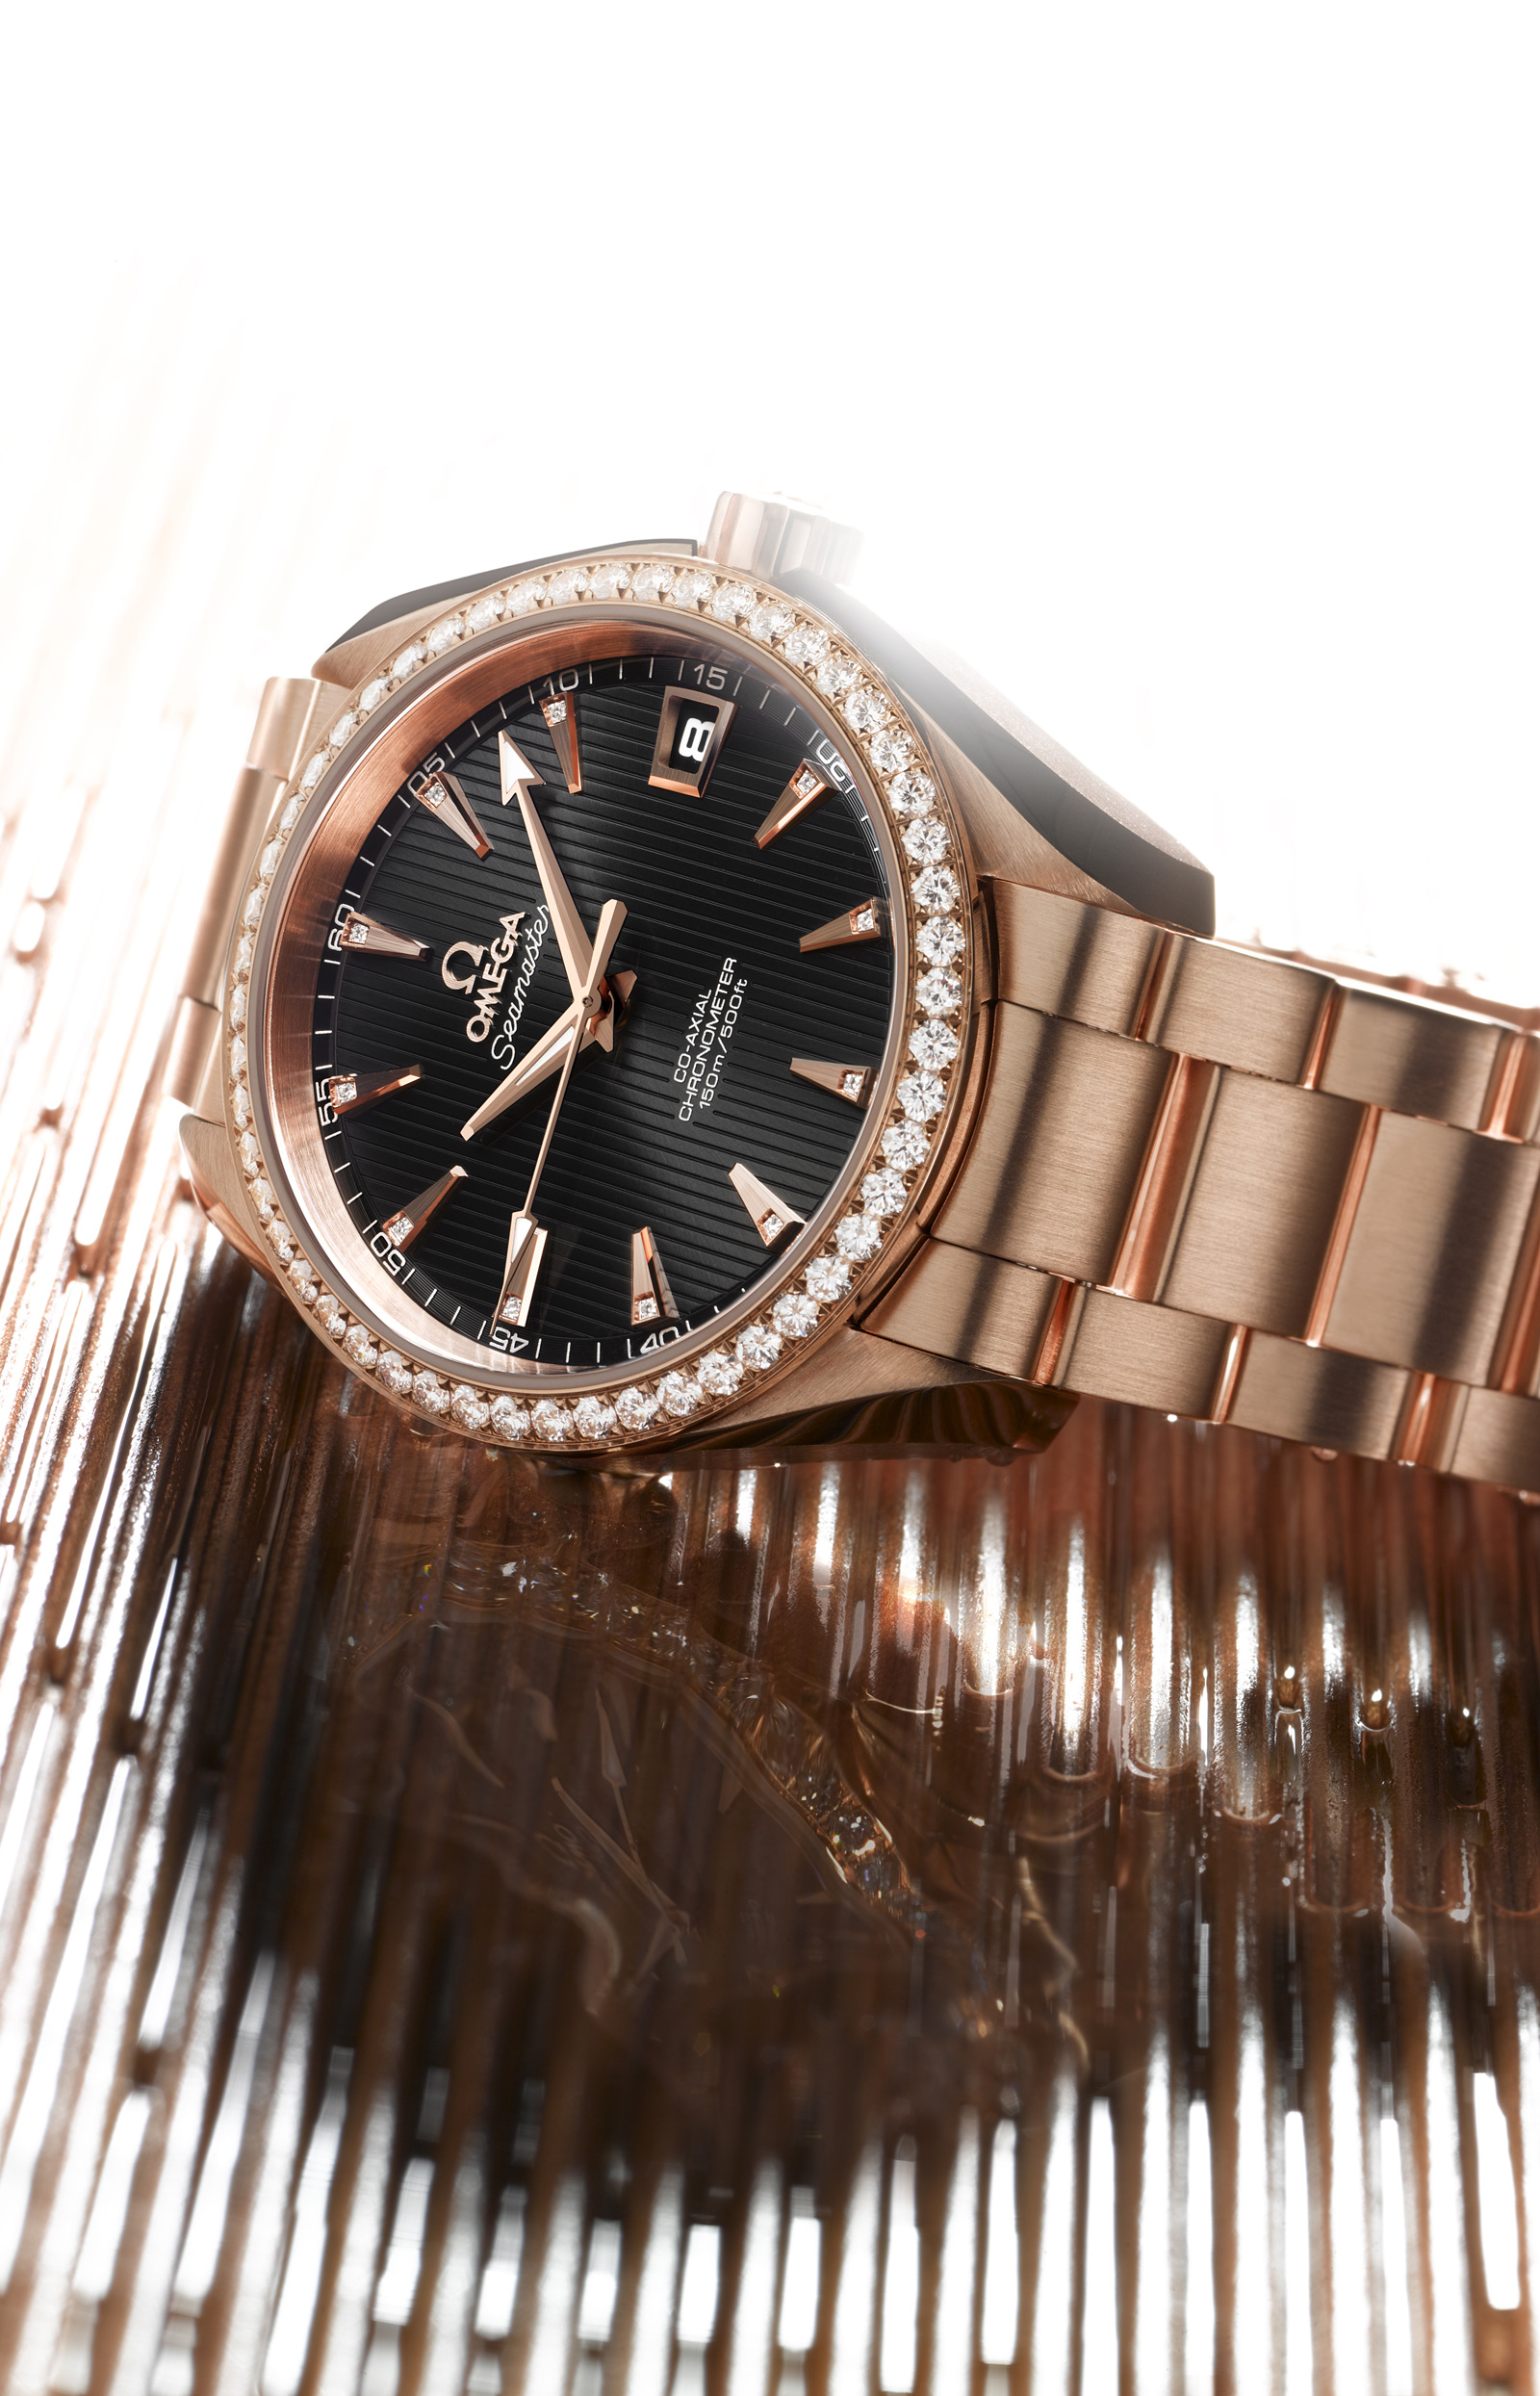 Omega Seamaster Aqua Terra Jewellery Co-Axial in 18 Ct Red Gold